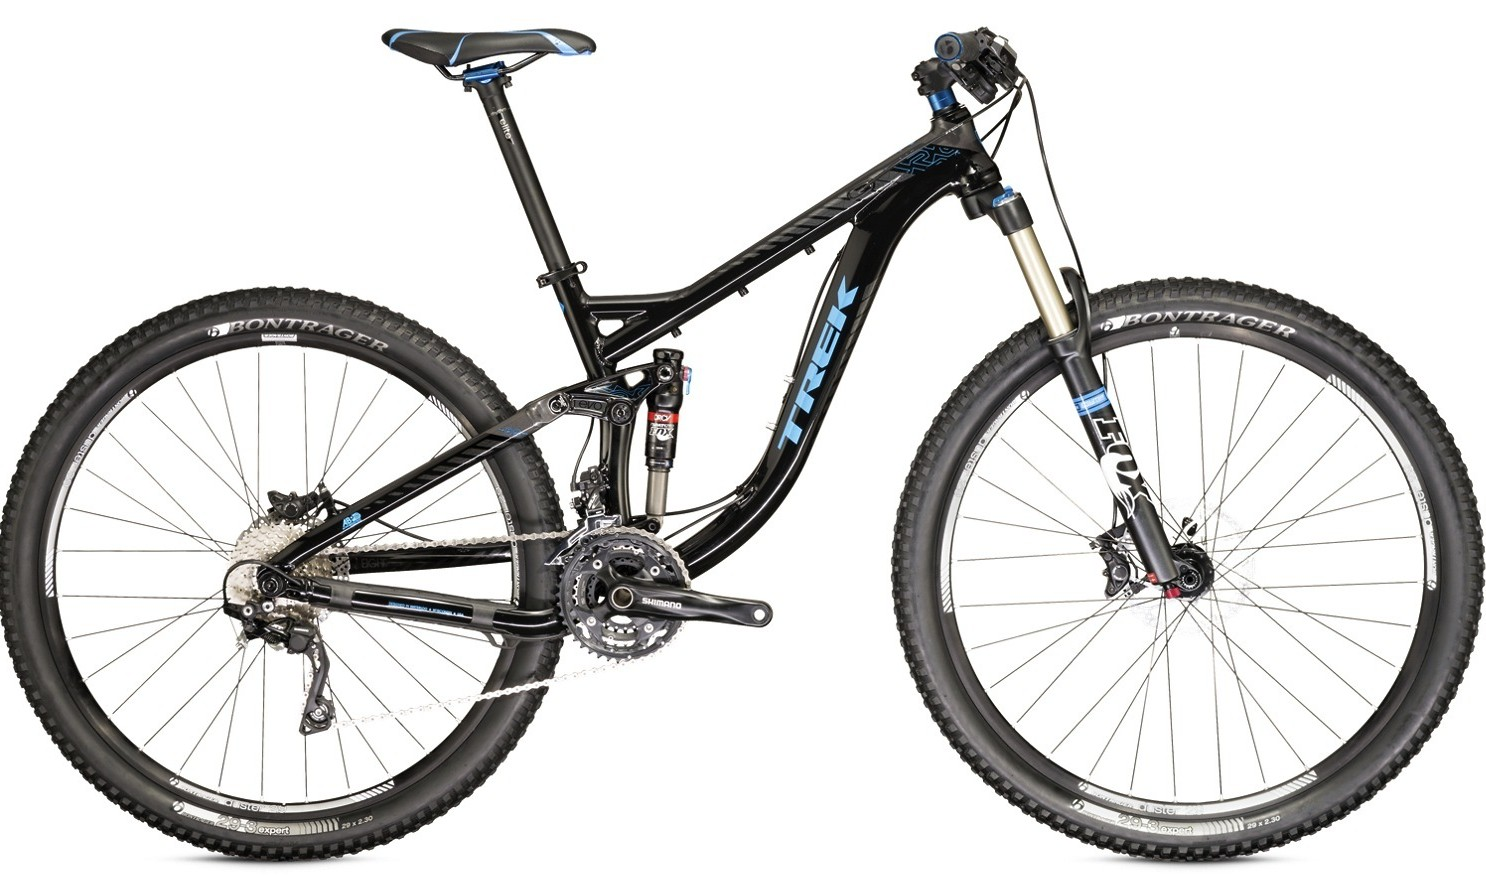 bike - 2014 Trek Remedy 8 29